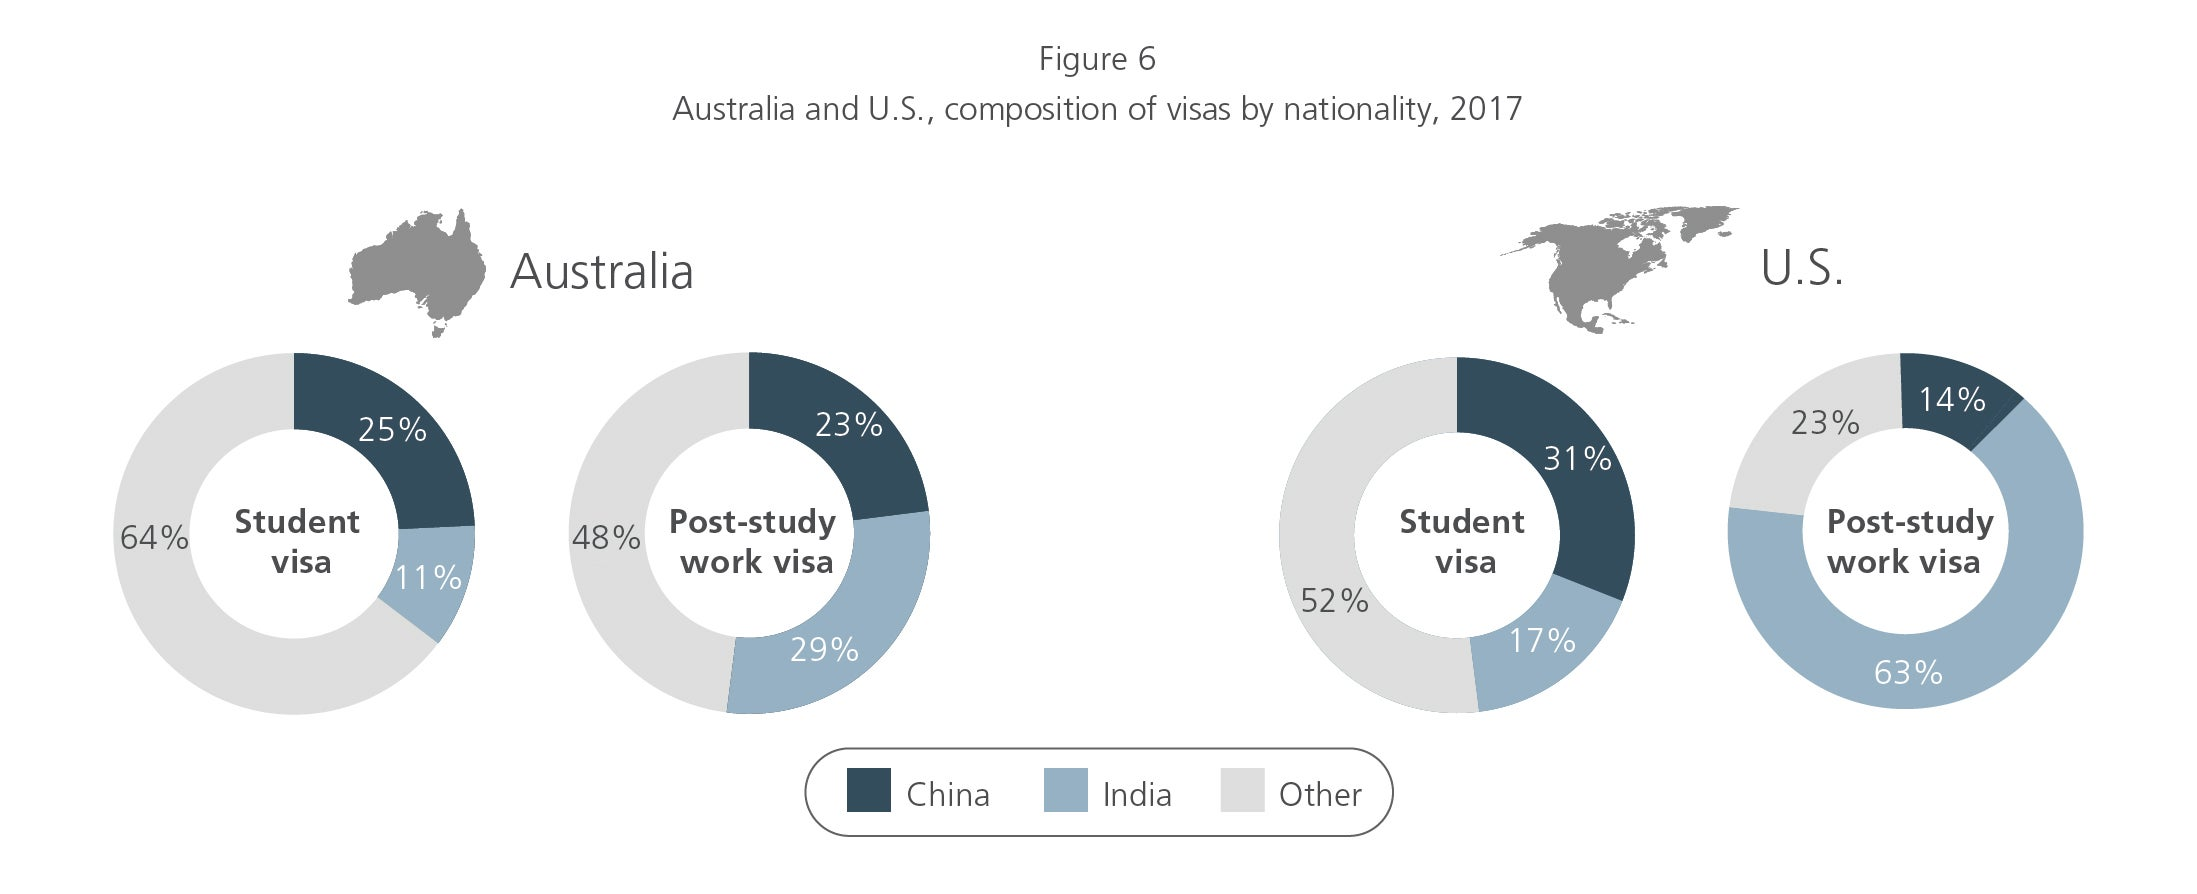 AU and US composition of visas by nationality in 2017